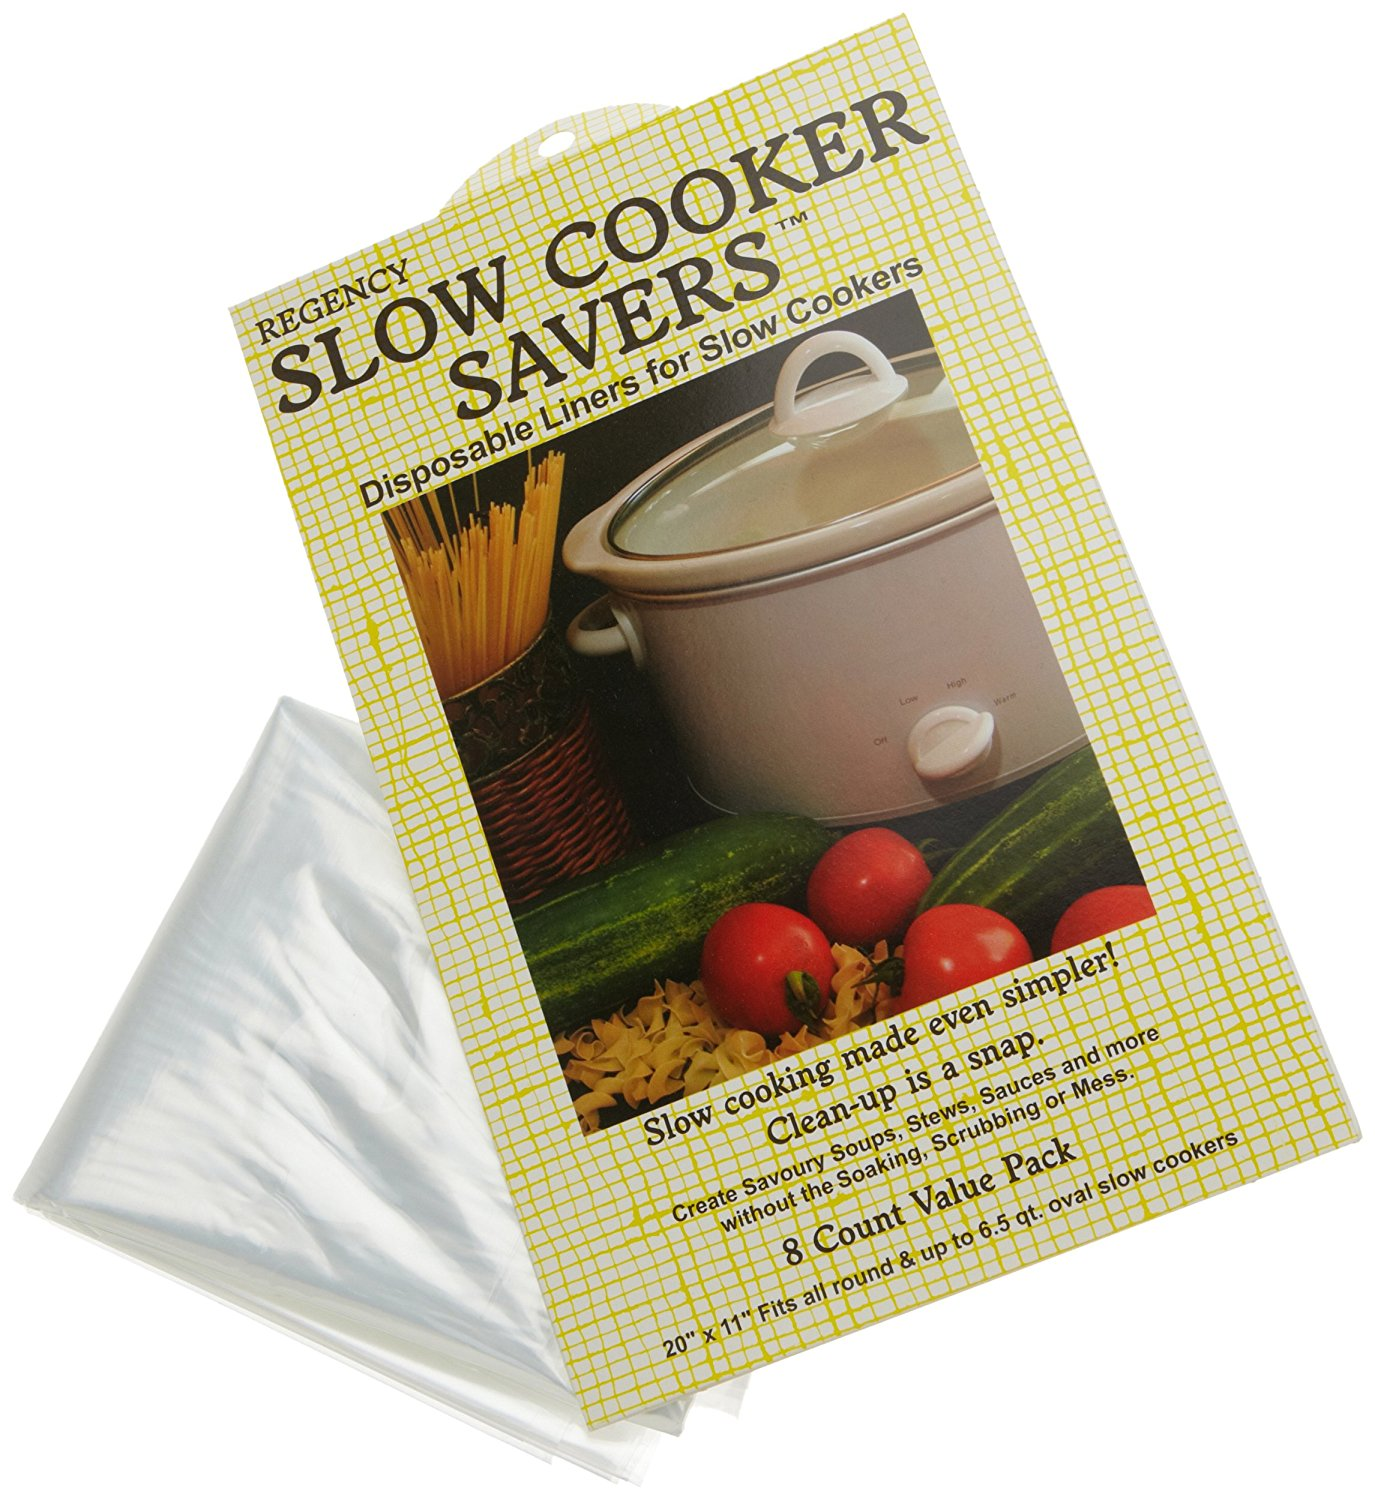 Regency Slow Cooker Savers..., By Regency Wraps Ship from US